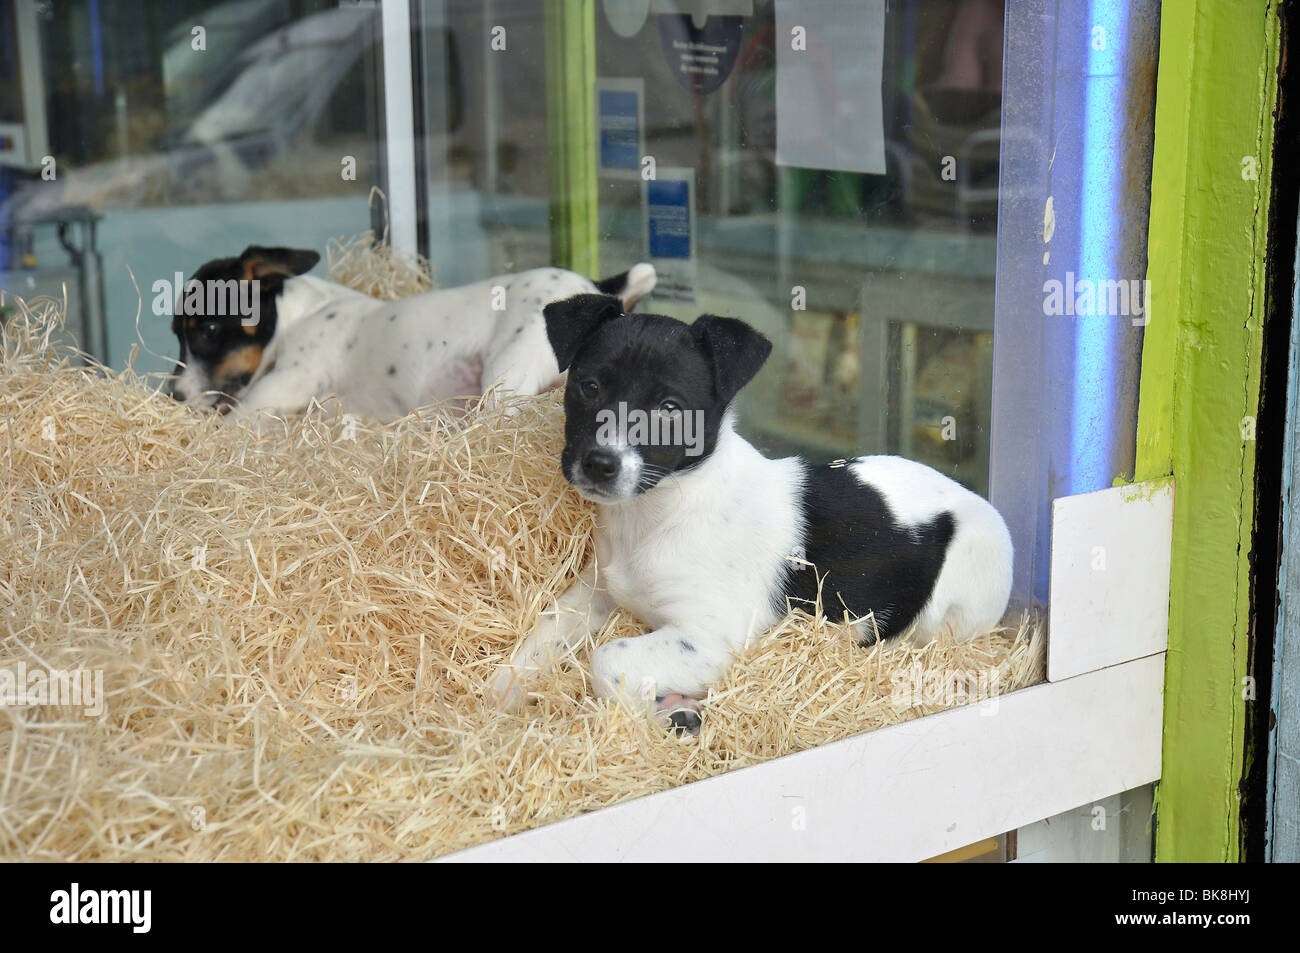 Puppy Pet Shop Window High Resolution Stock Photography And Images Alamy